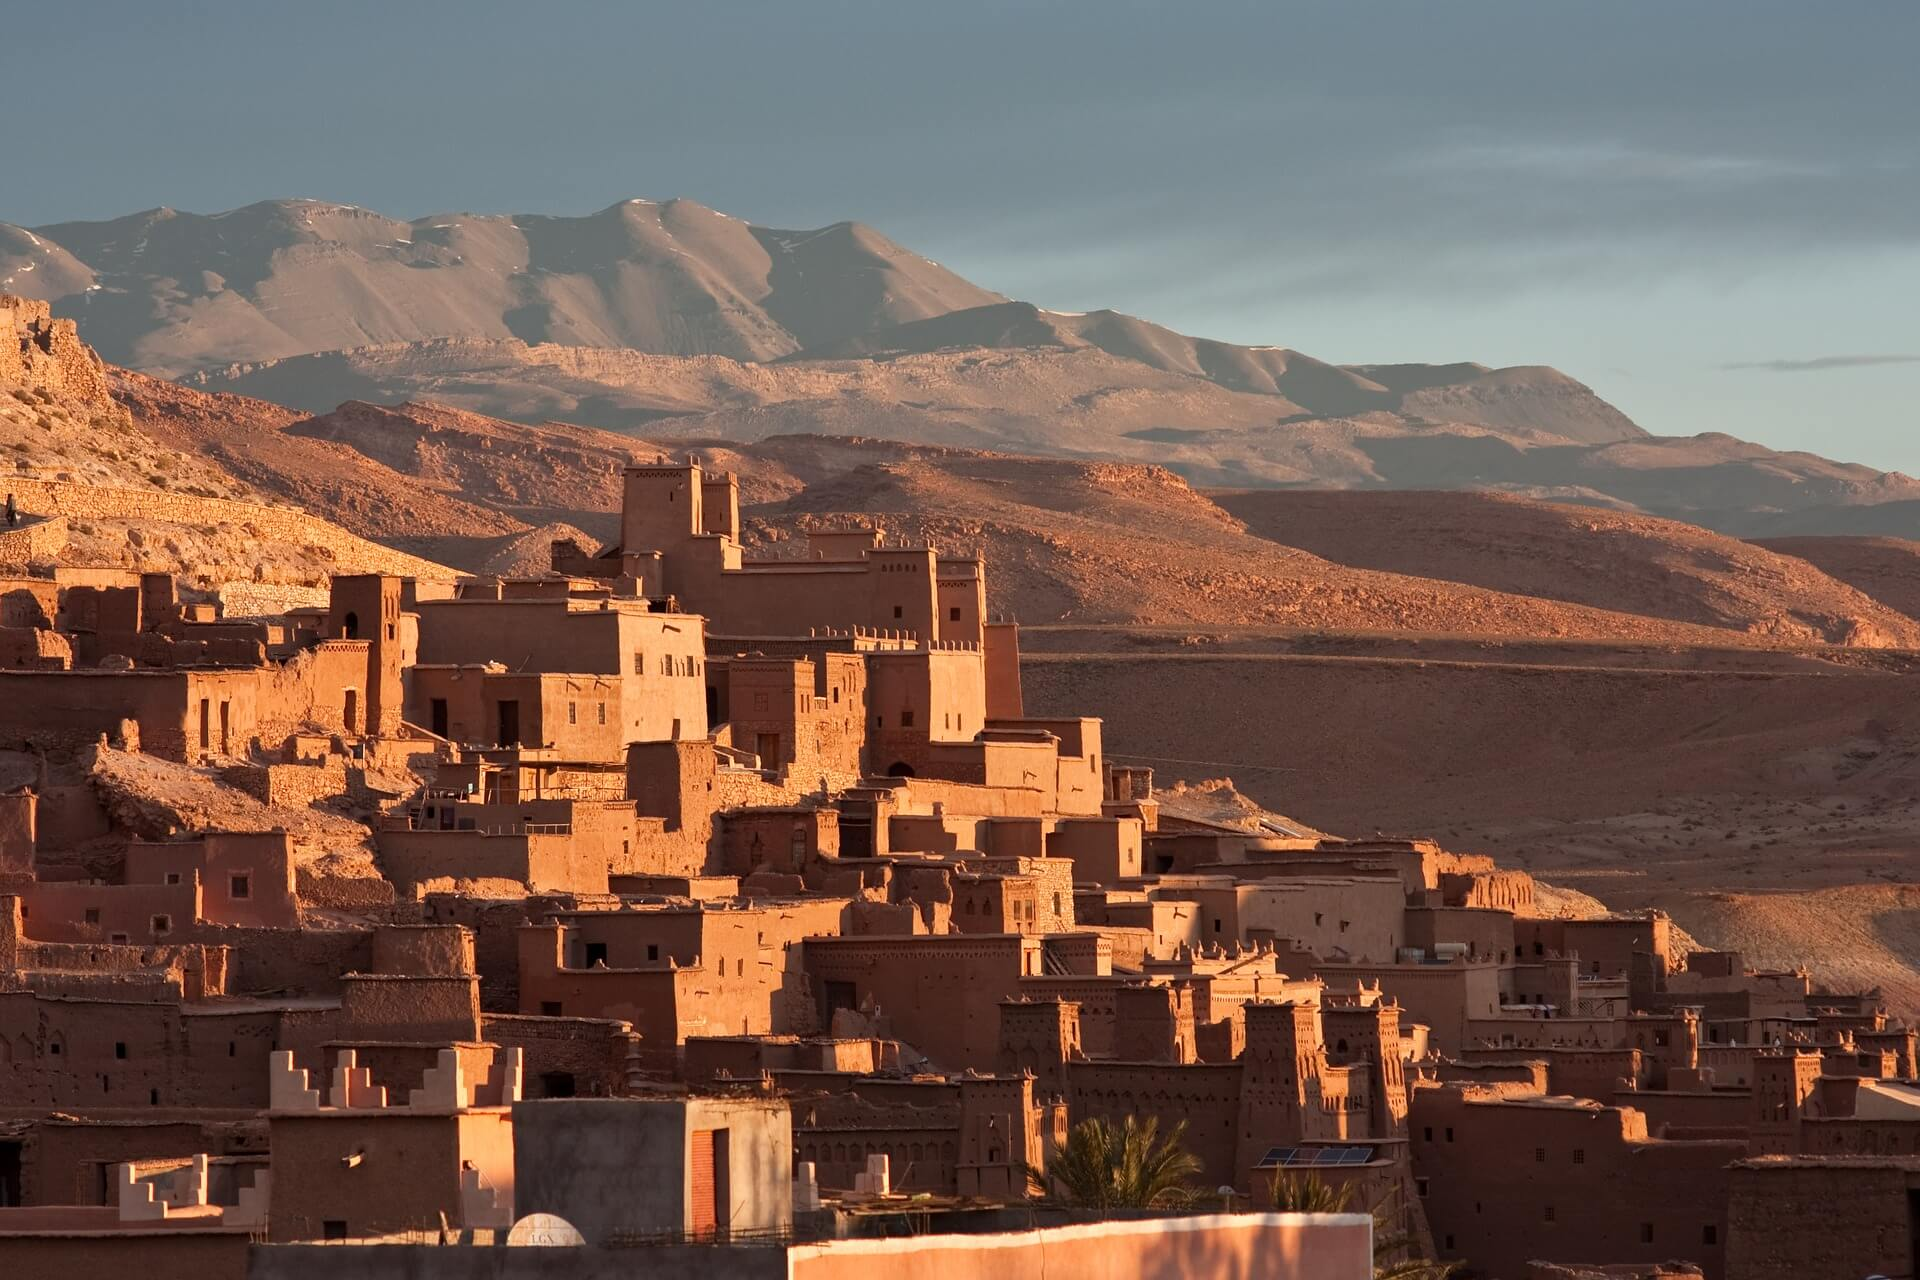 Sahara Desert Tour - Top Ten Things To Do in Morocco - Journey to Ait Ben Haddou